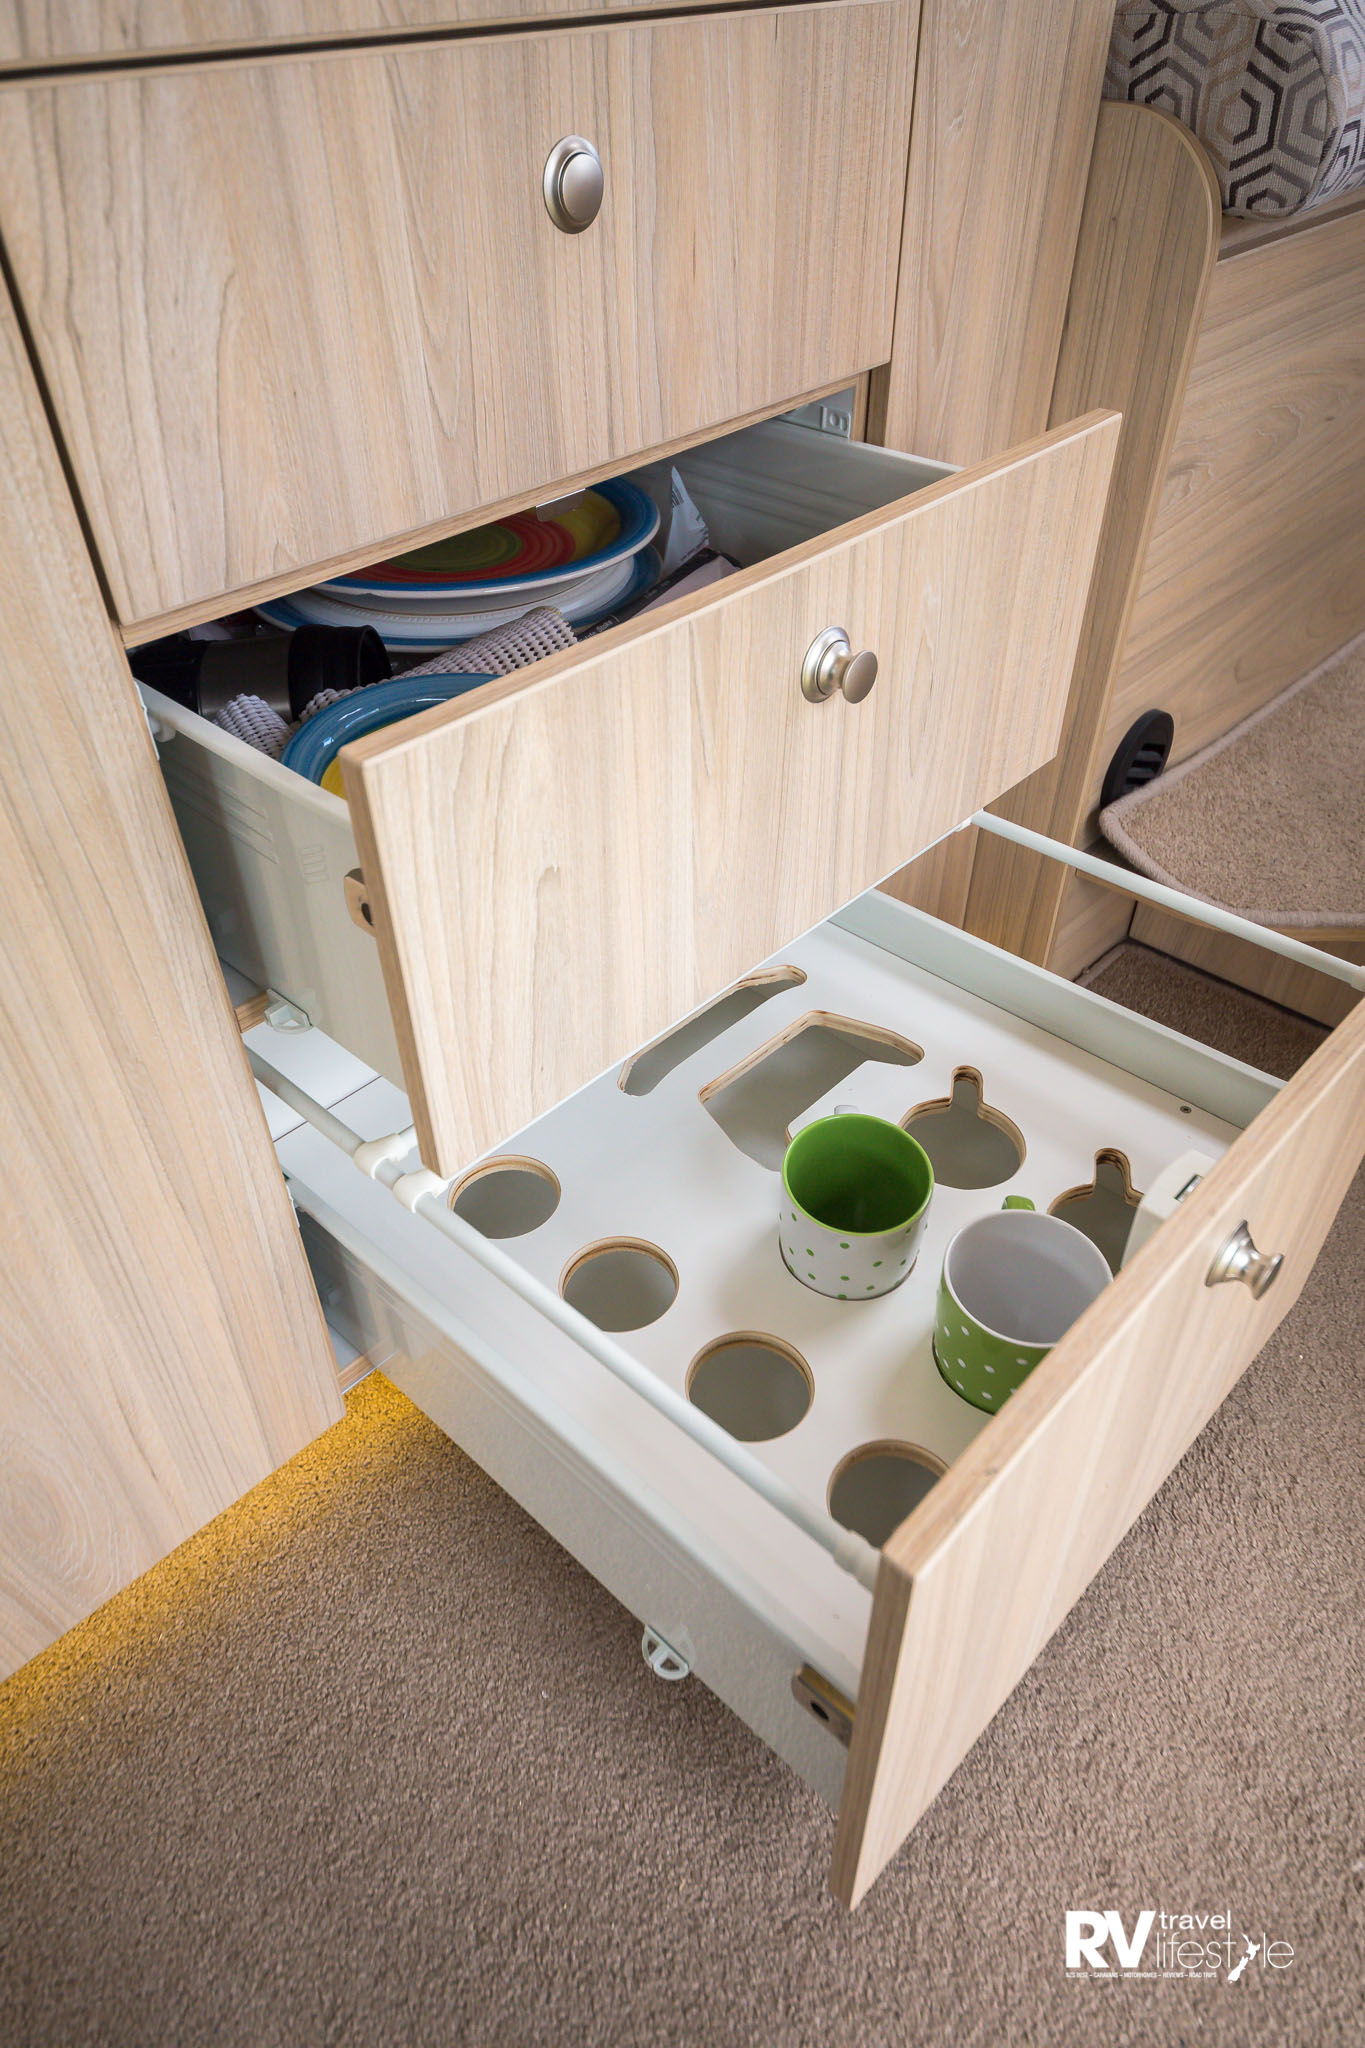 Clever features are revealed when you open the RV's soft-close drawers